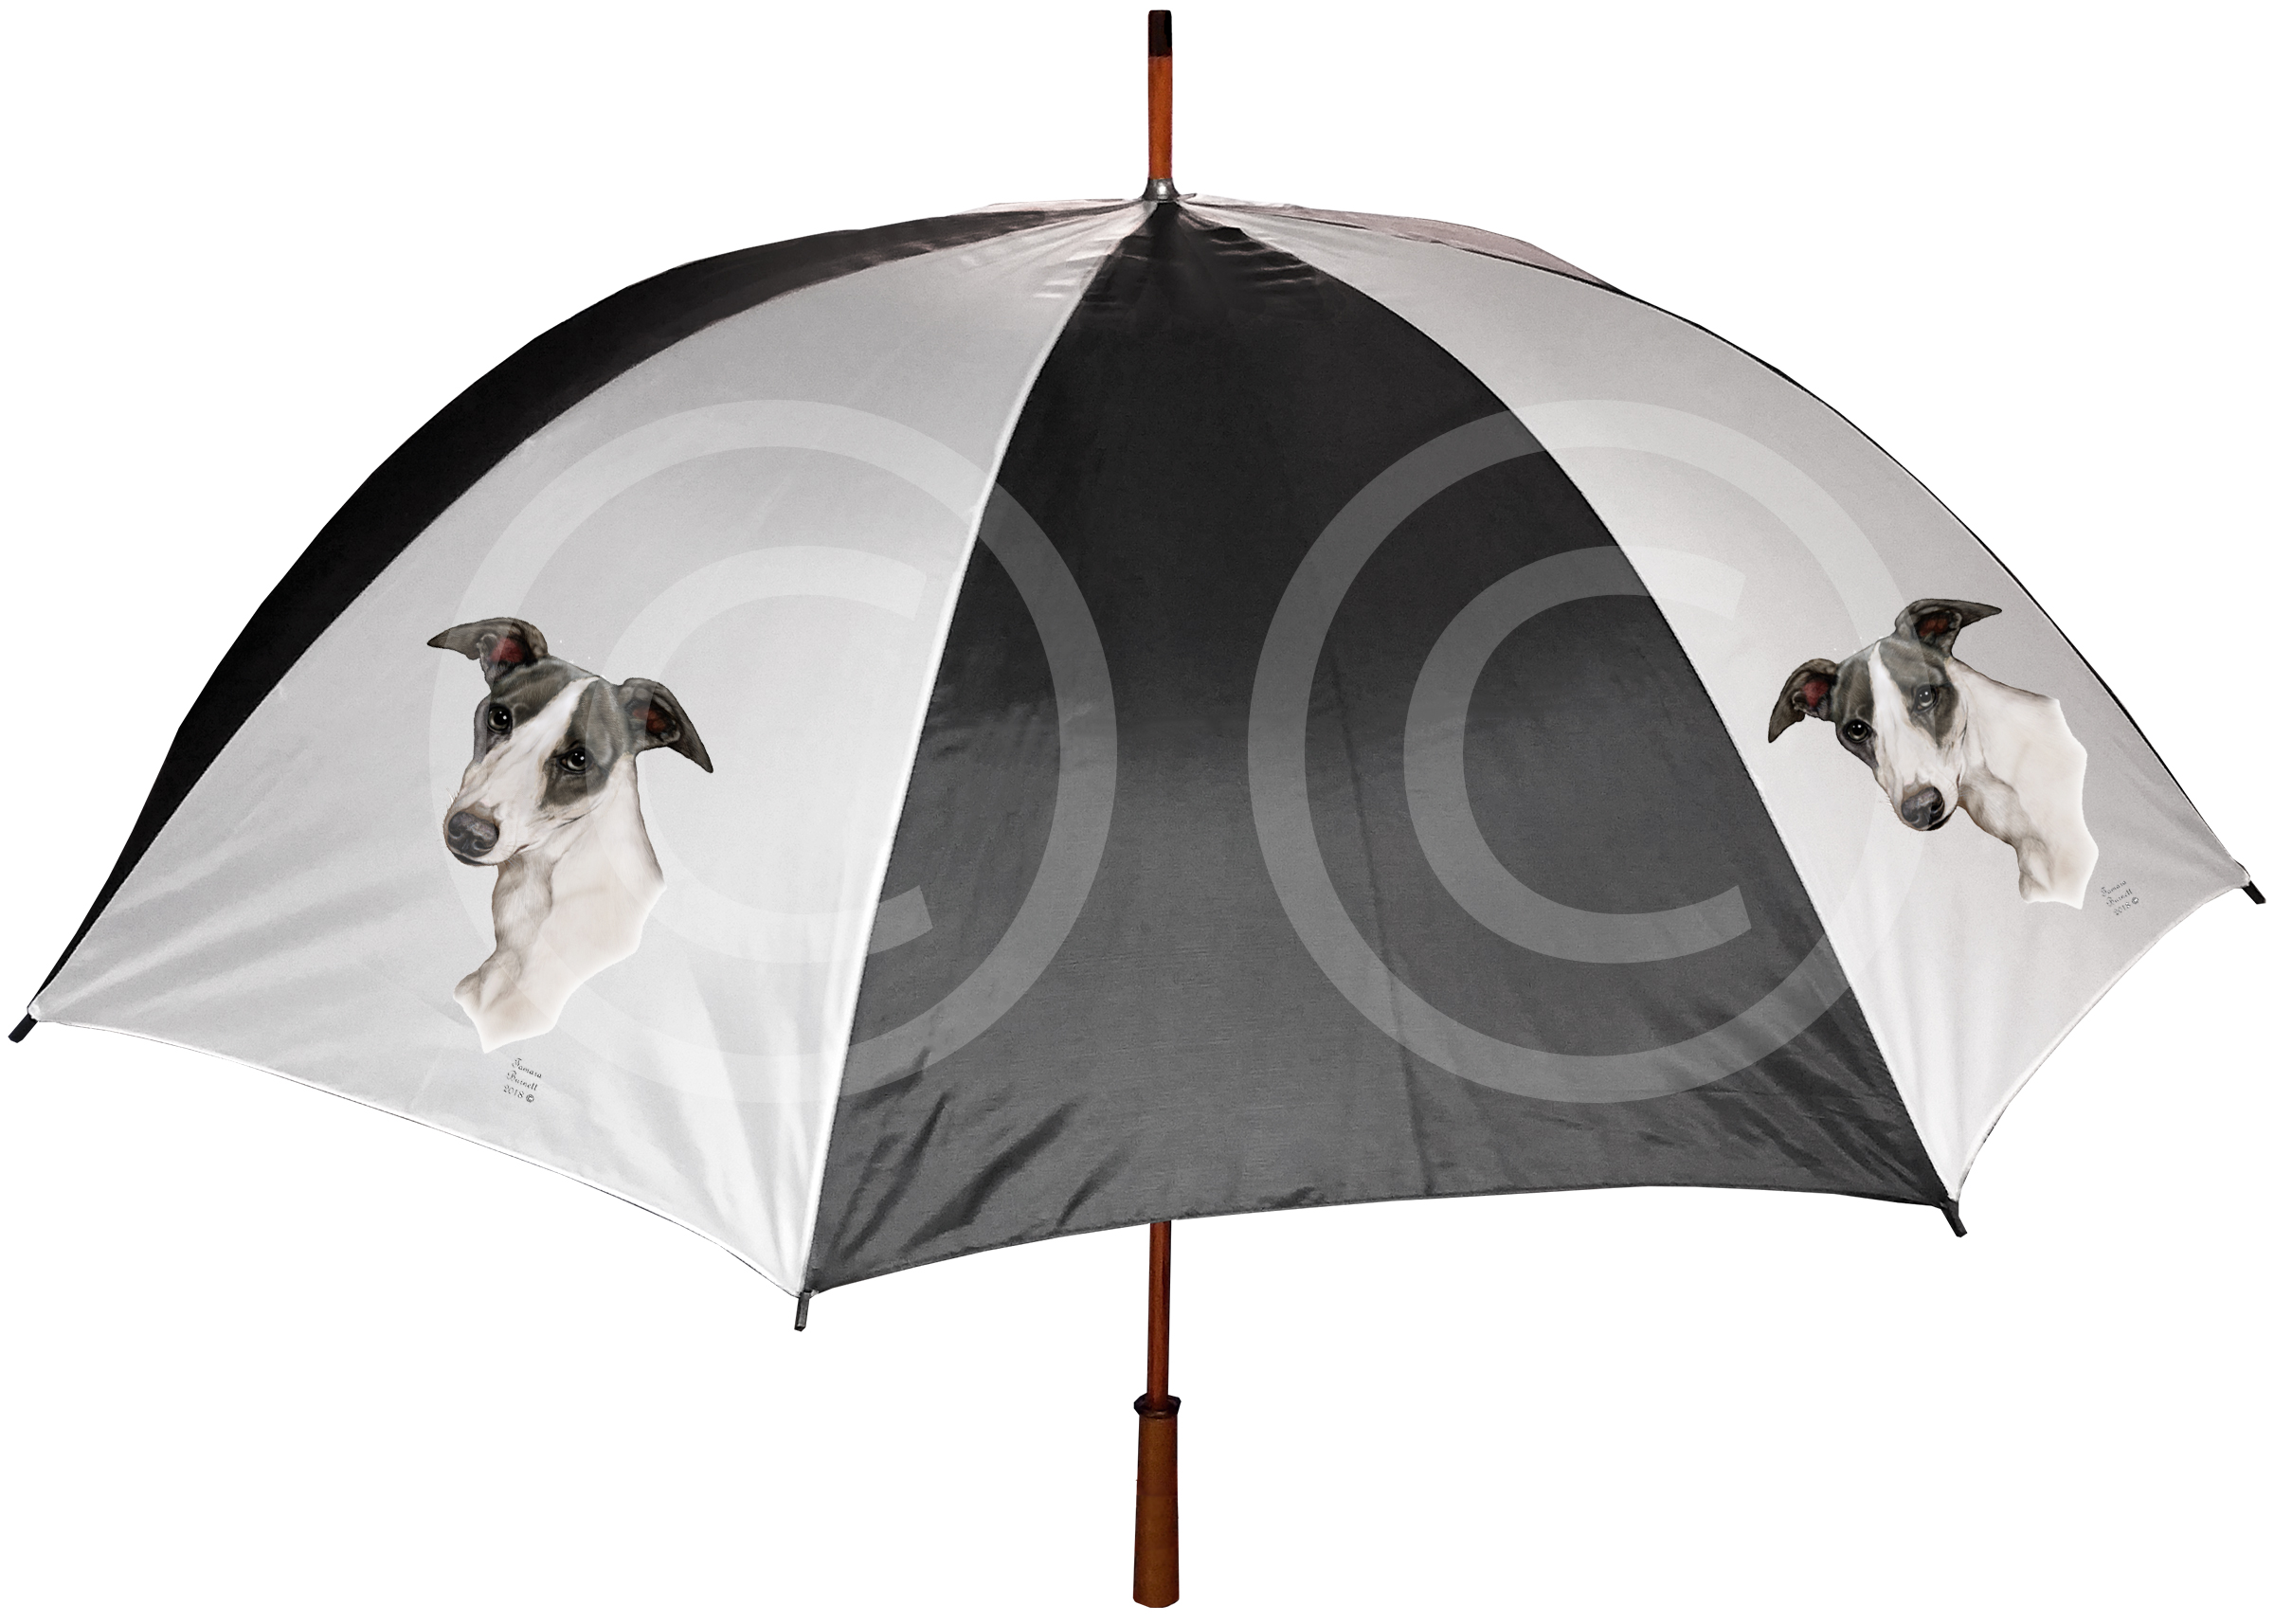 An image of the Shetland Sheepdog - Umbrella